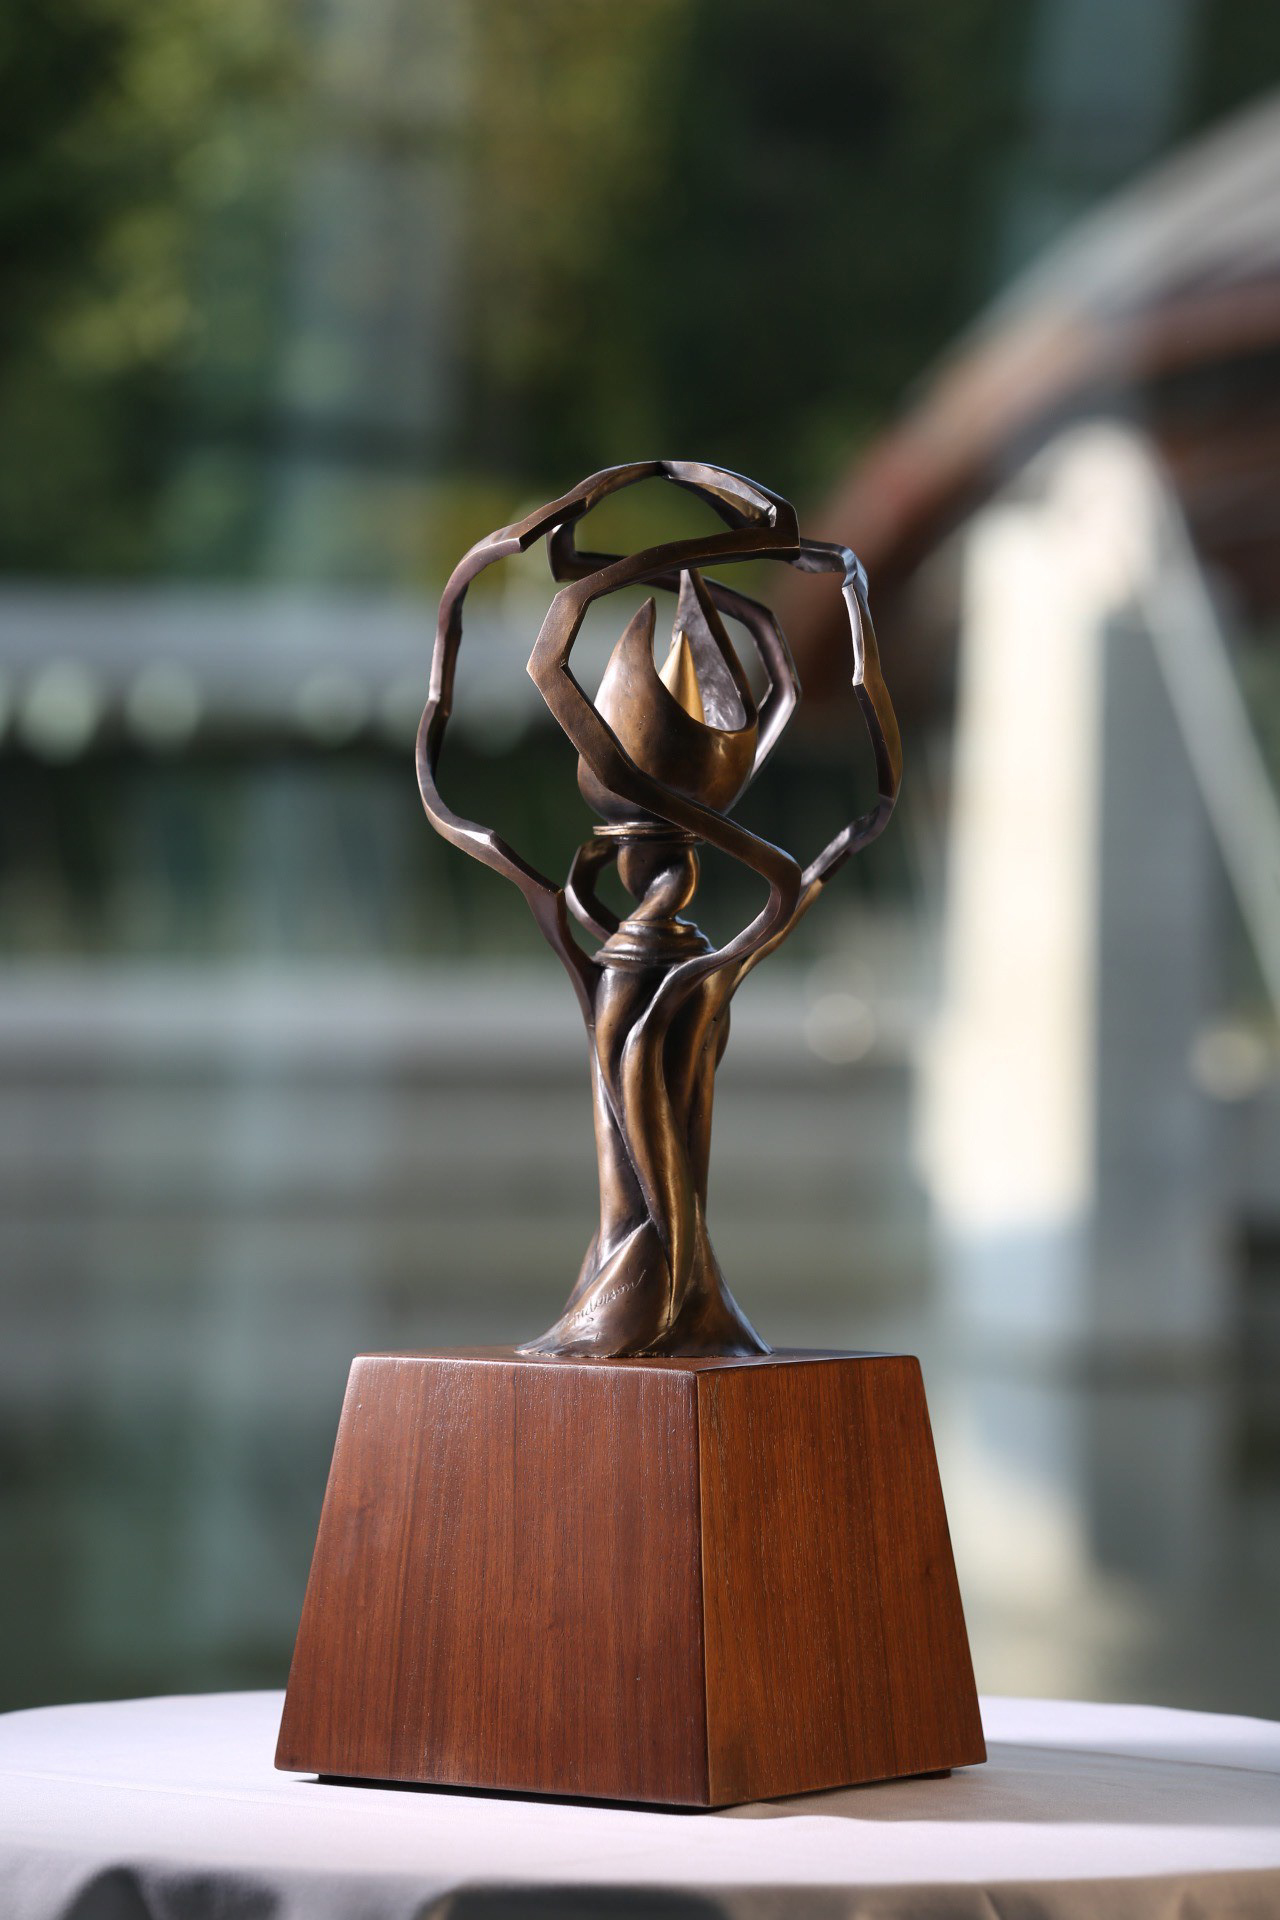 Tyson prize award statue designed by Troy Anderson